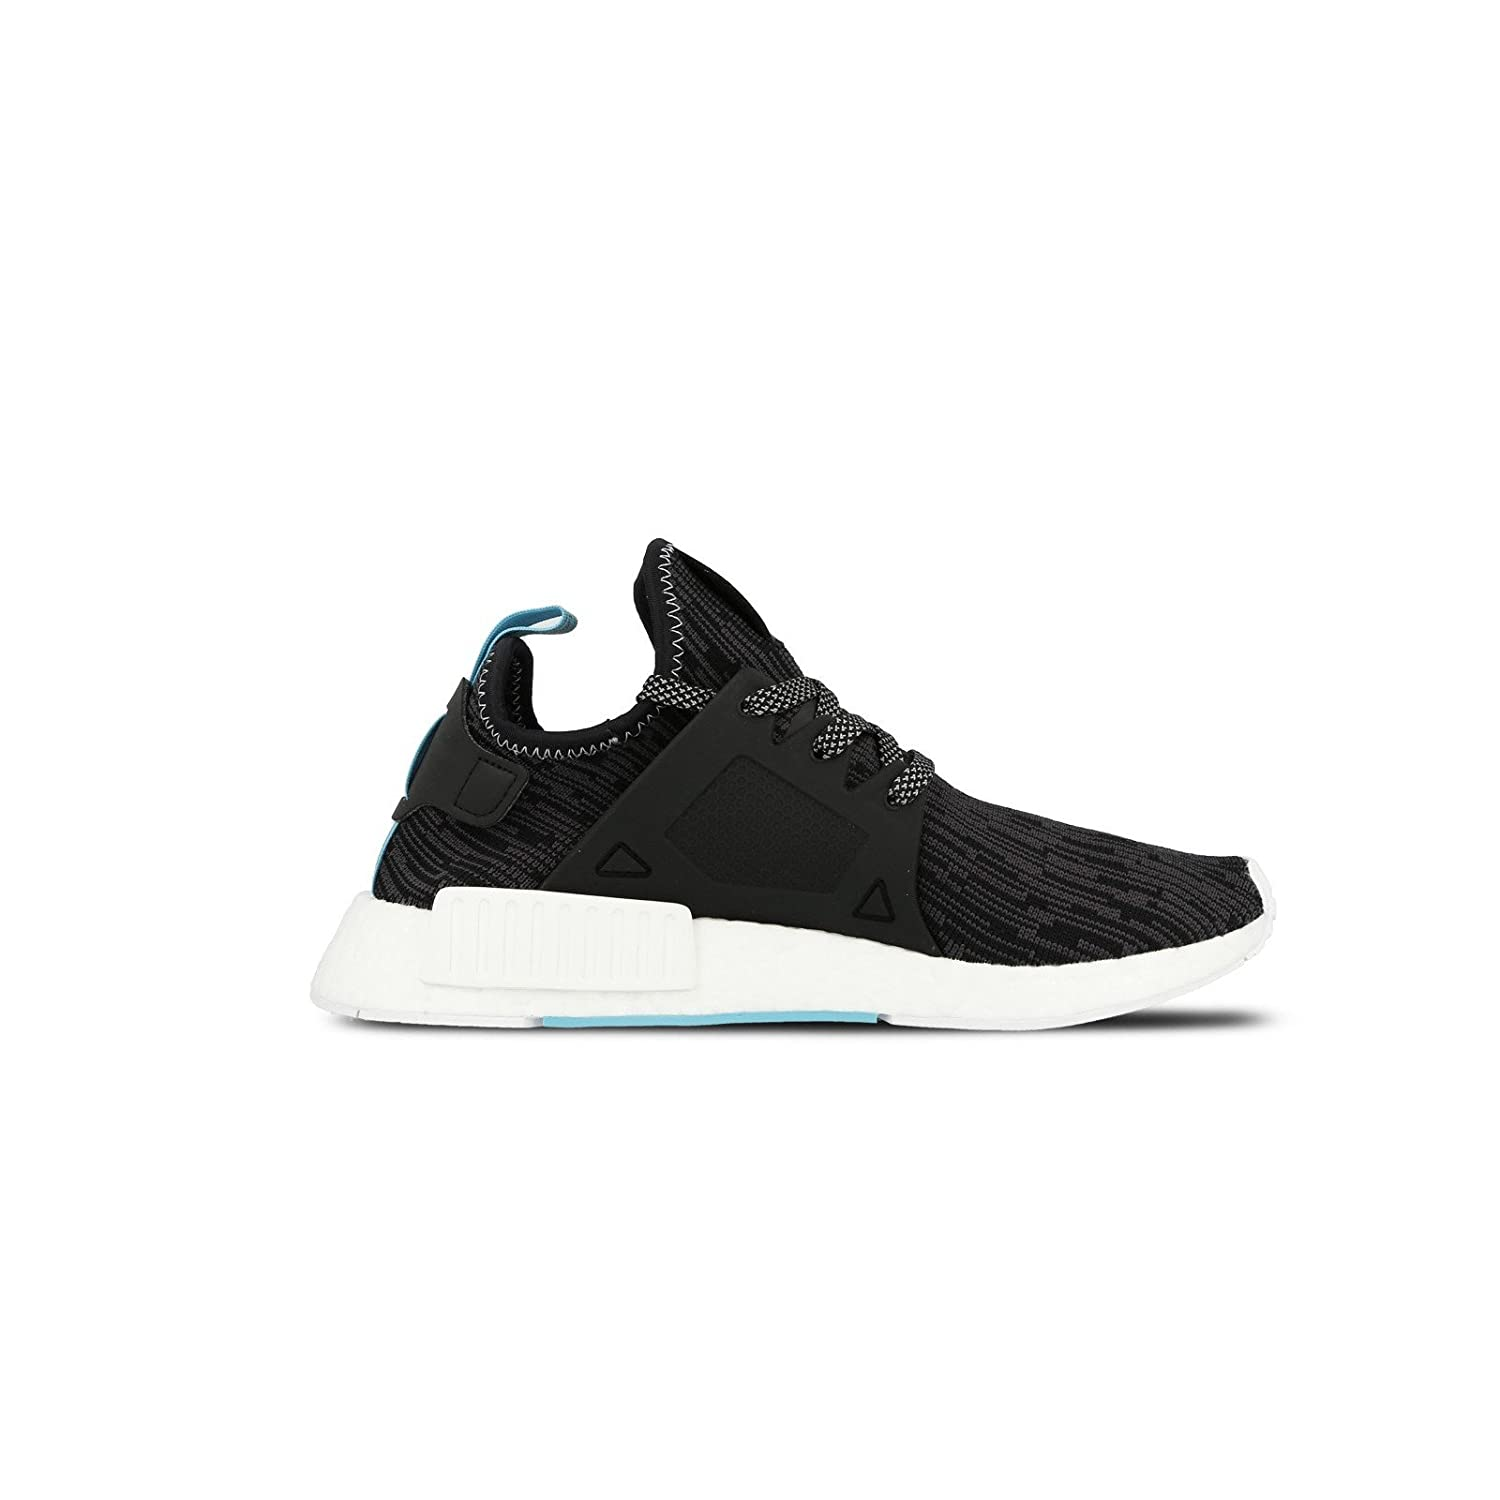 outlet store 2cbaa fc6c9 Black Shoes adidas NMD_XR1 PK (S32215) 41 1/3 -